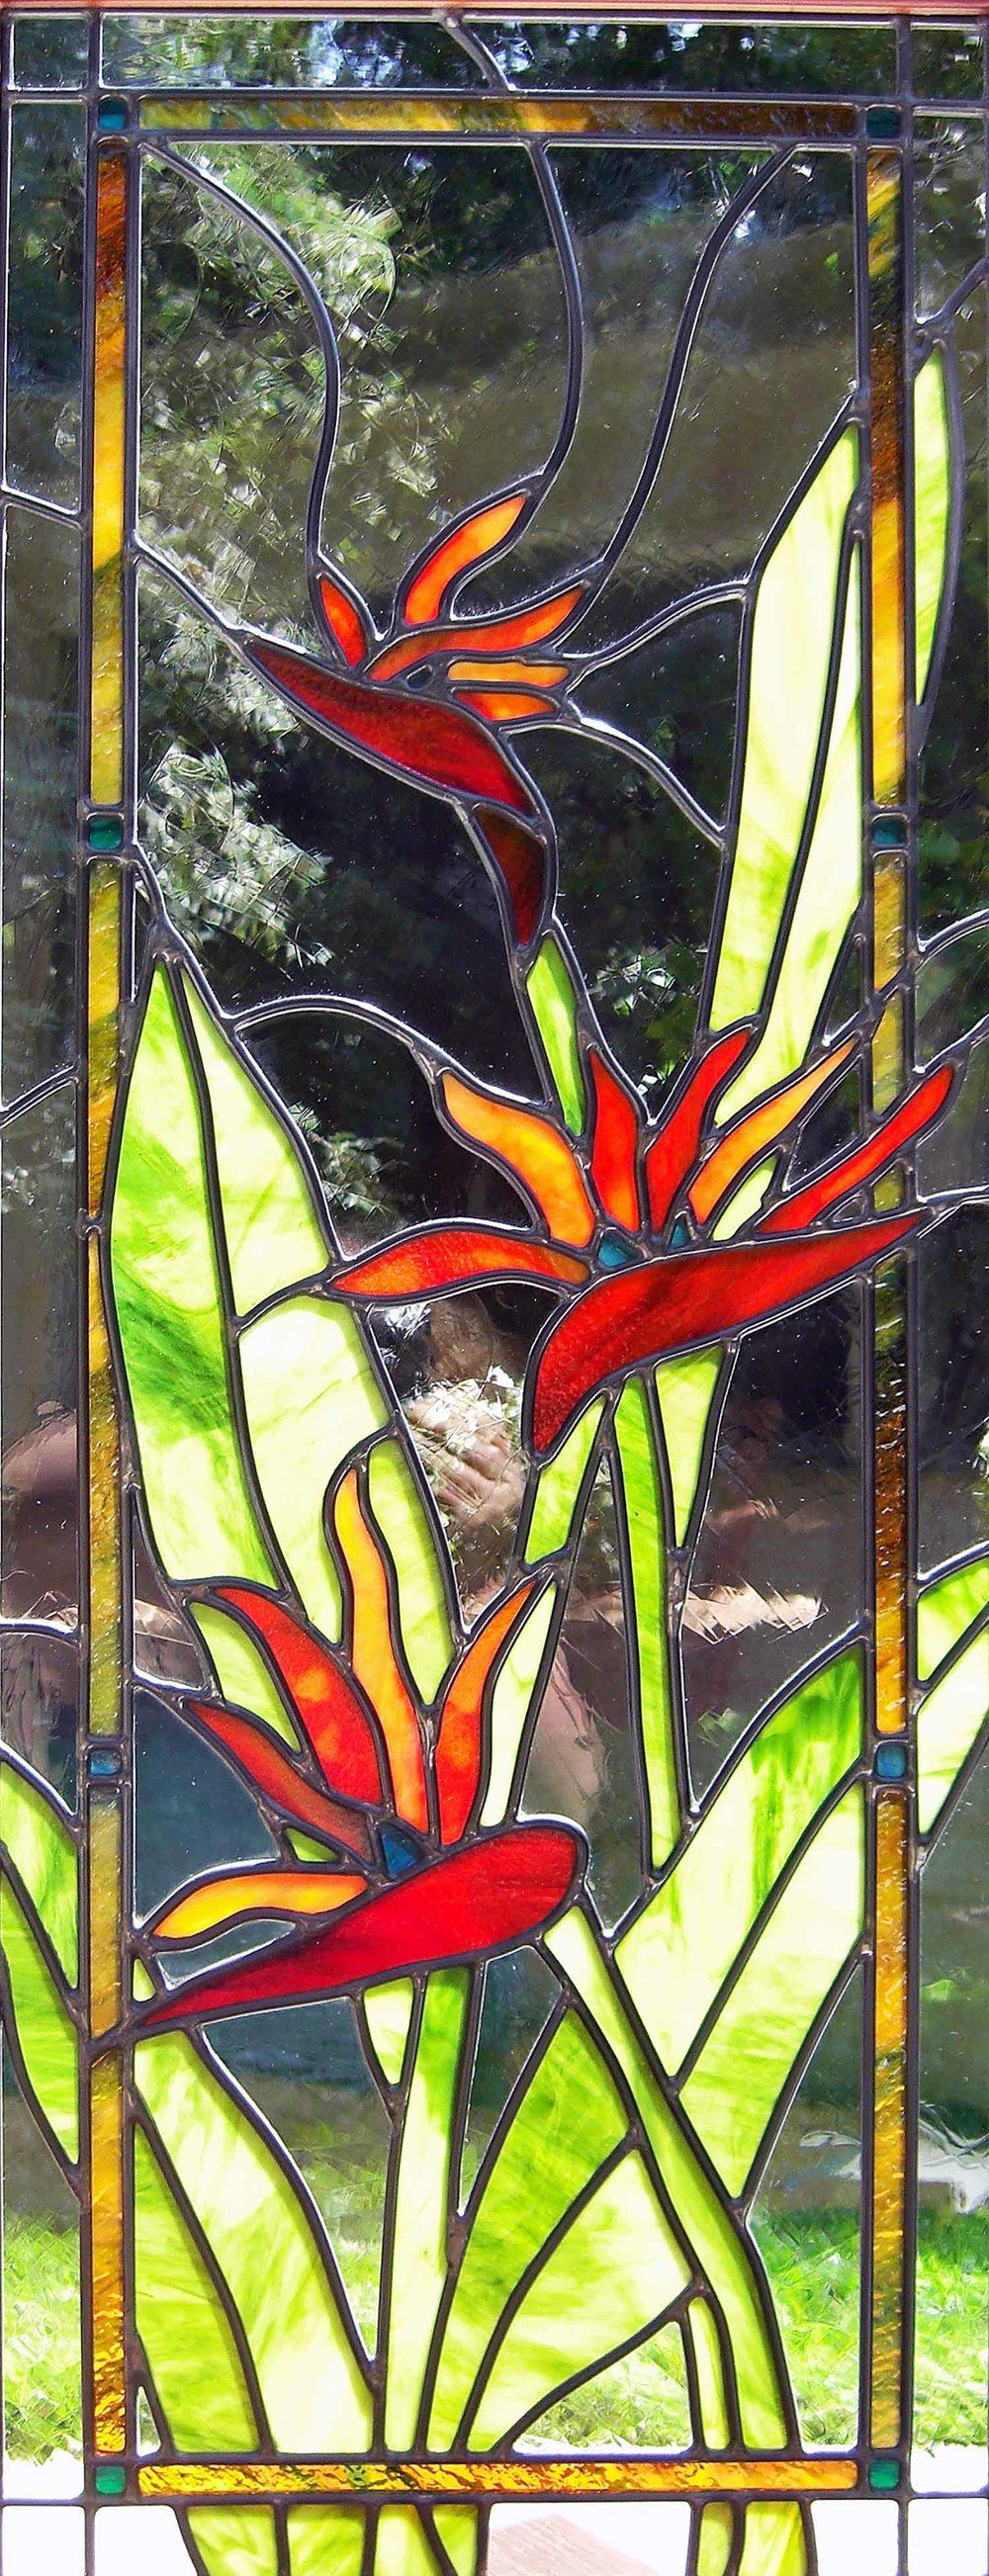 birds of paradise flower floral leaded glass stained glass studio palo alto atherton california san francisco san jose legacy glass.jpg